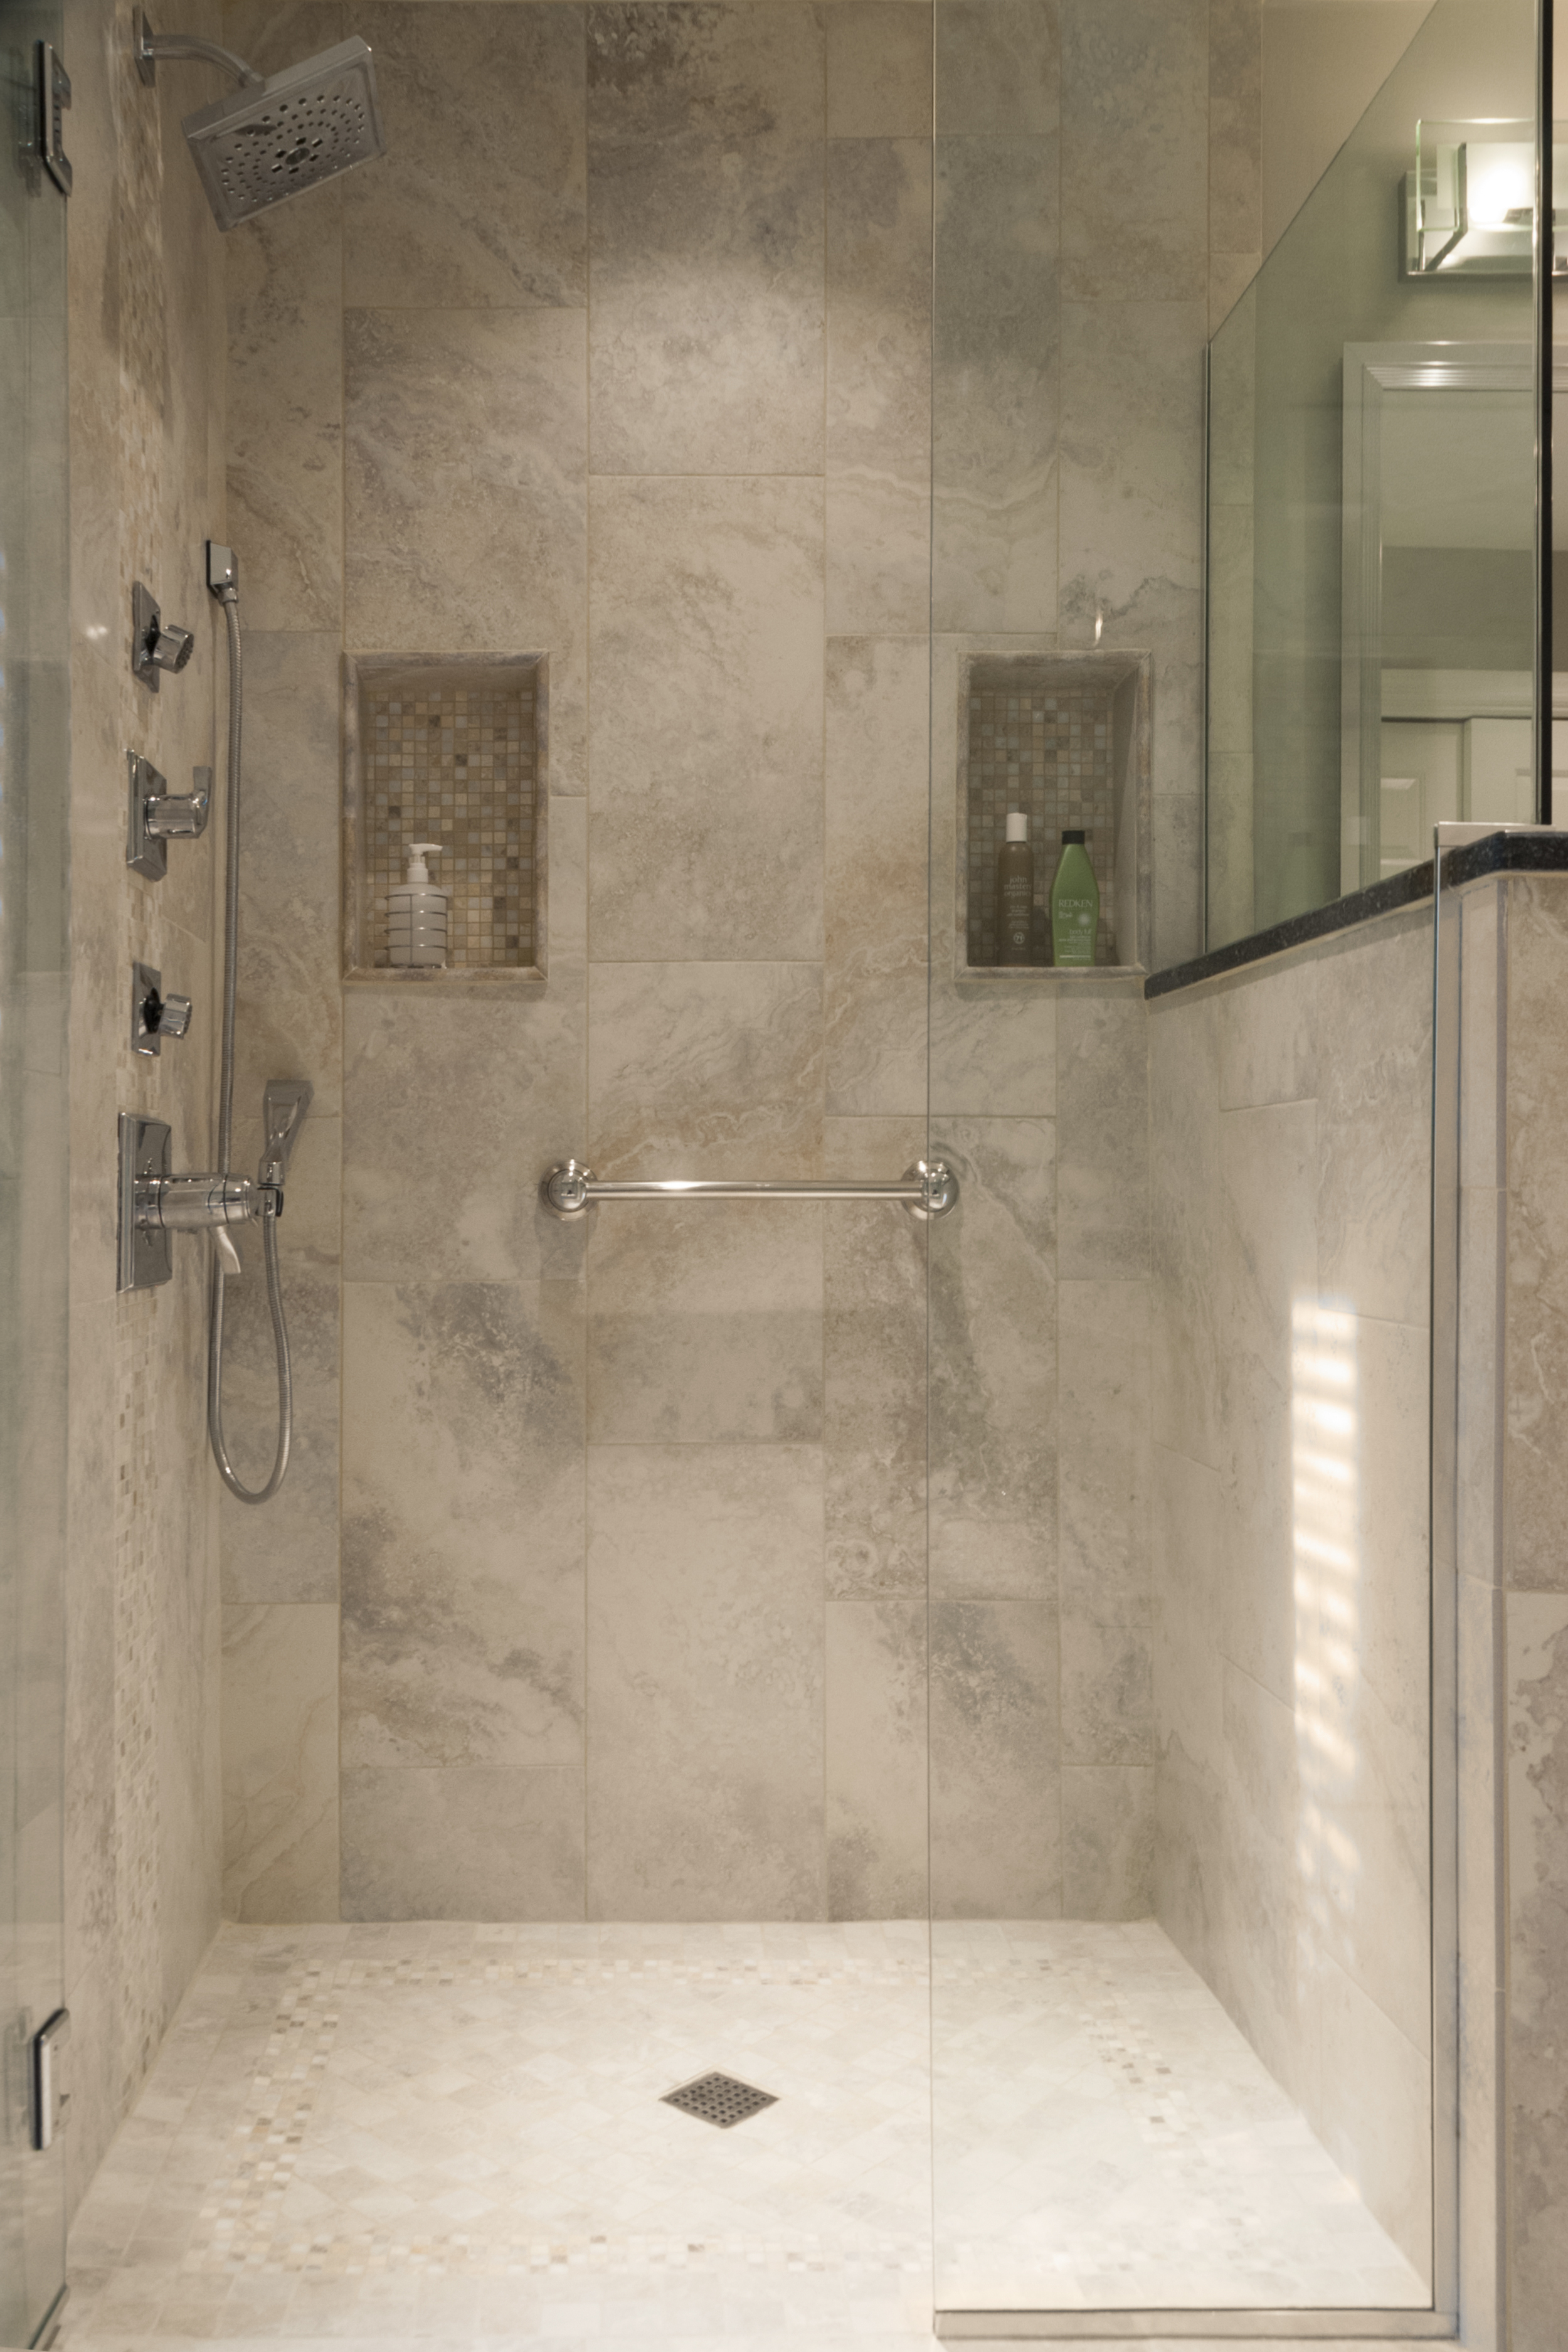 his and her shower niches